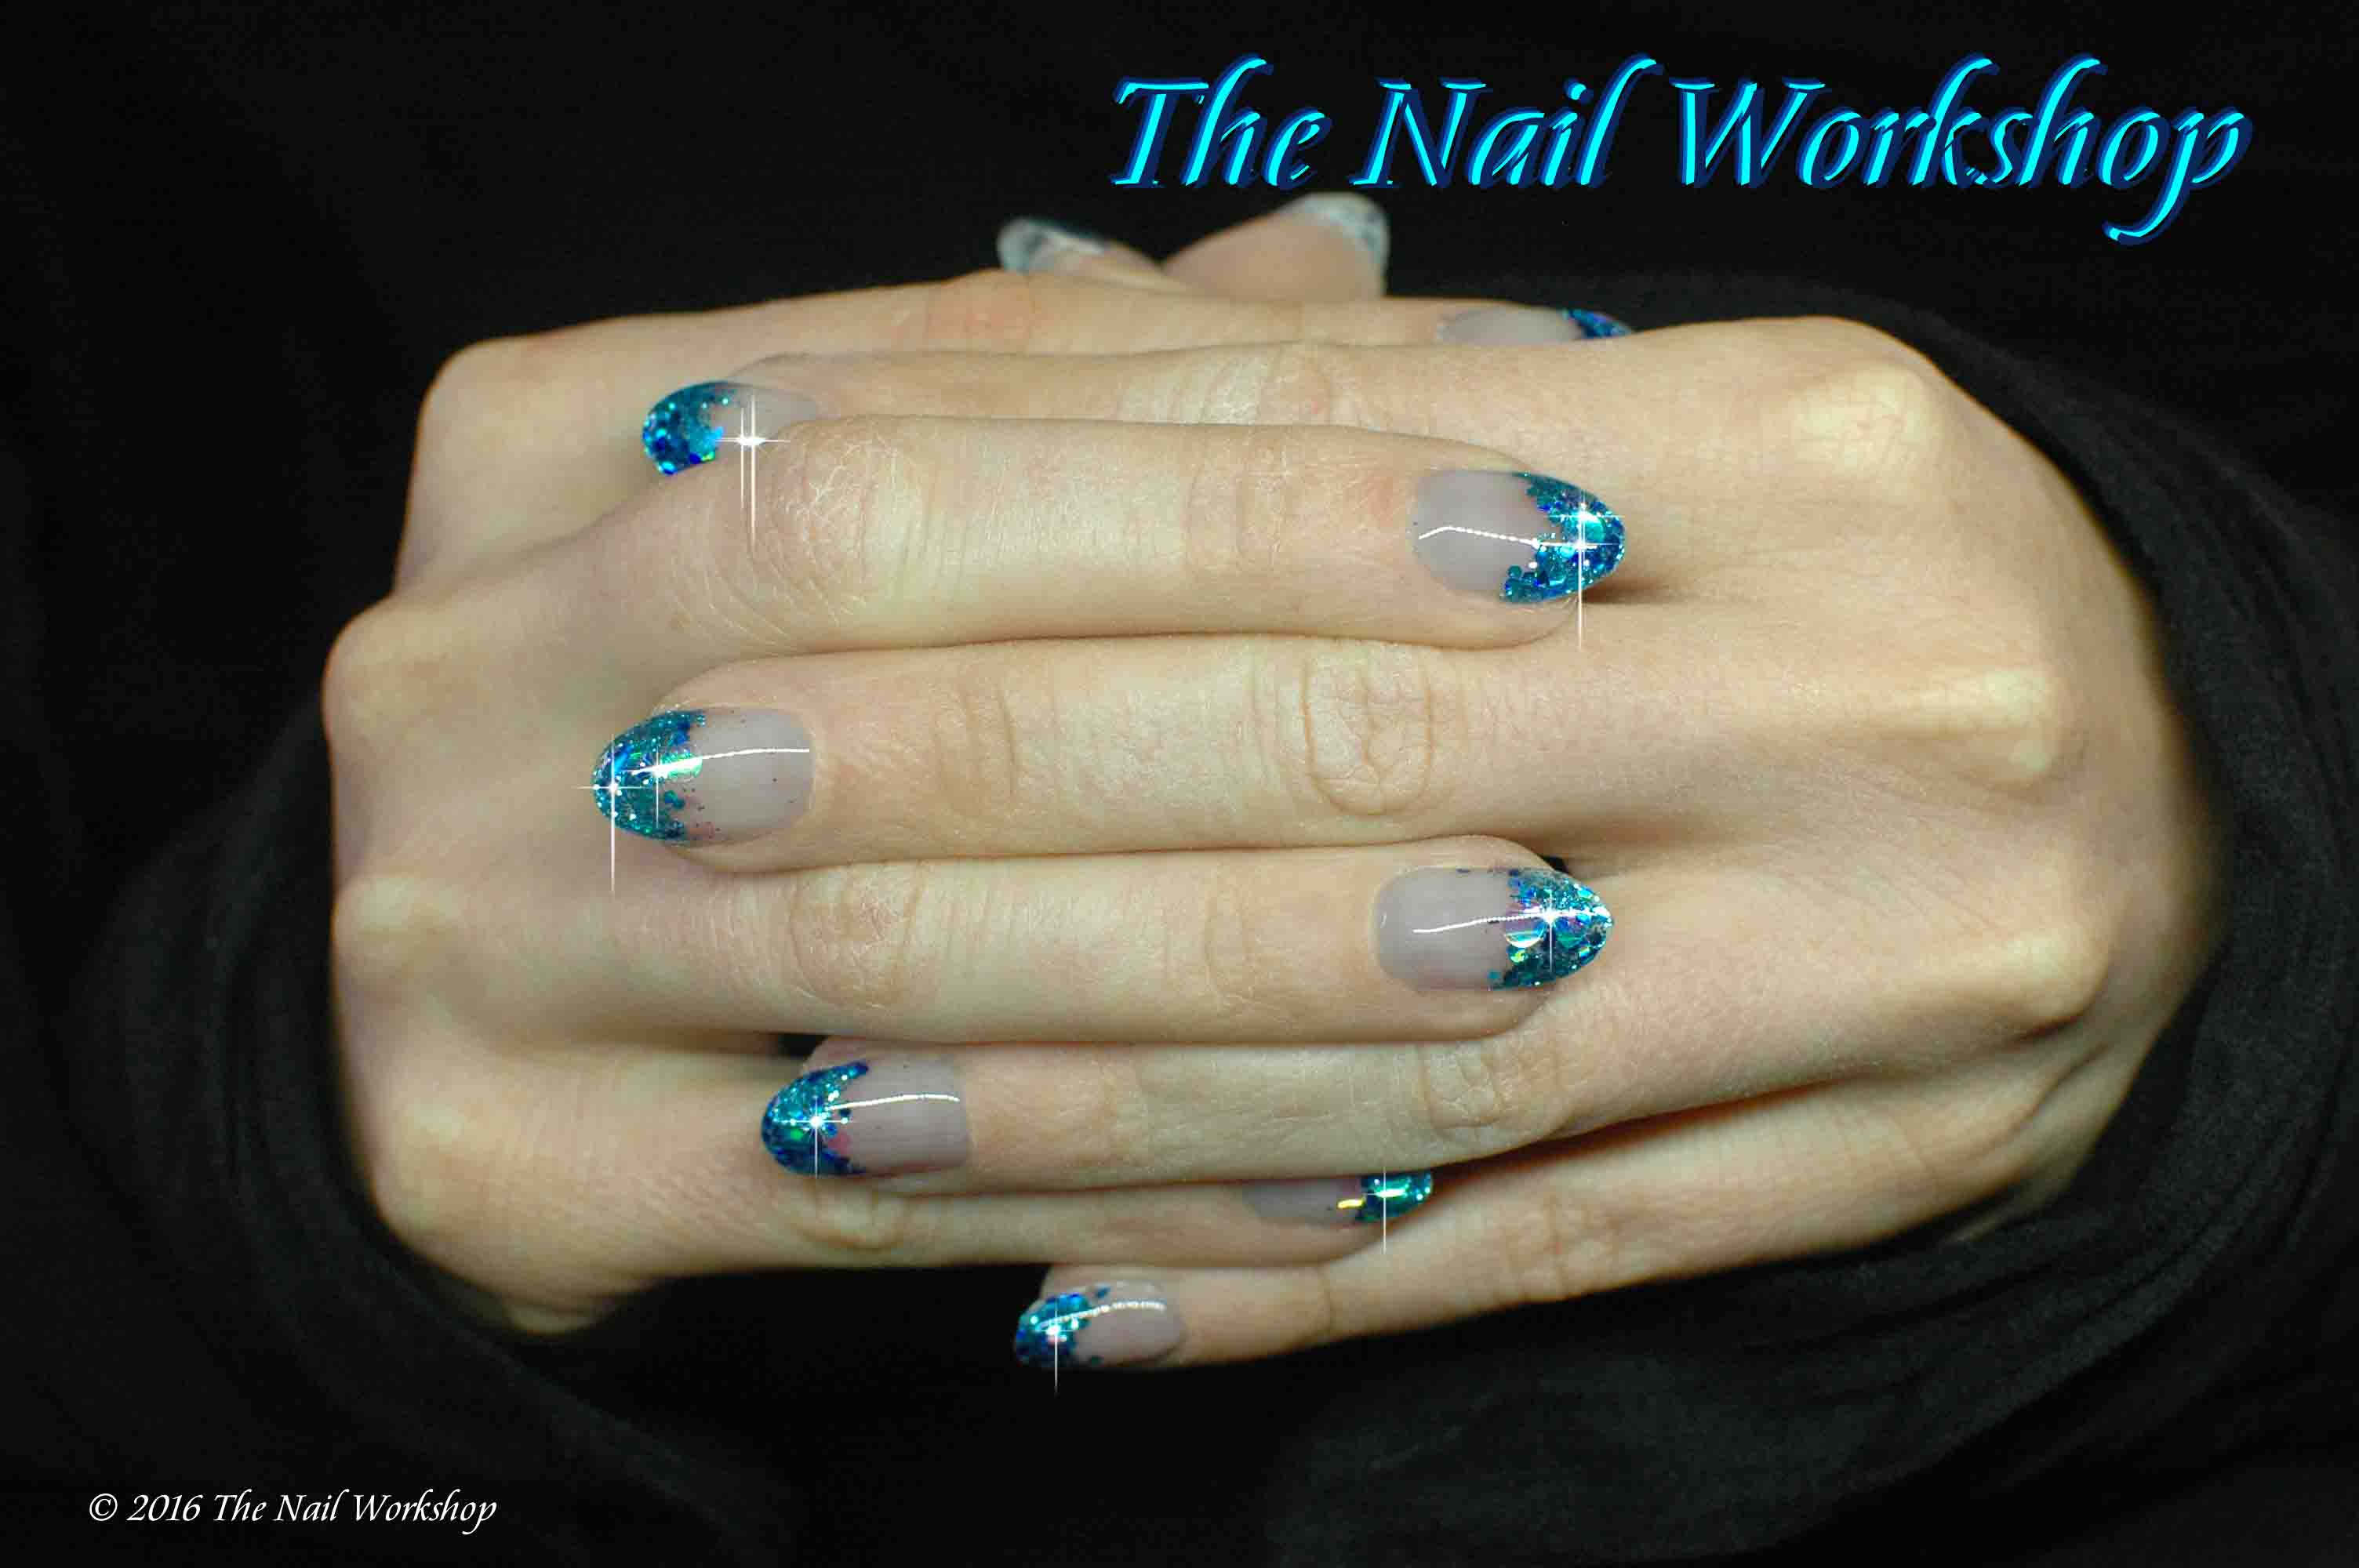 ProHesion Acrylic Encapsulated Blue and Green Glitter with Confetti